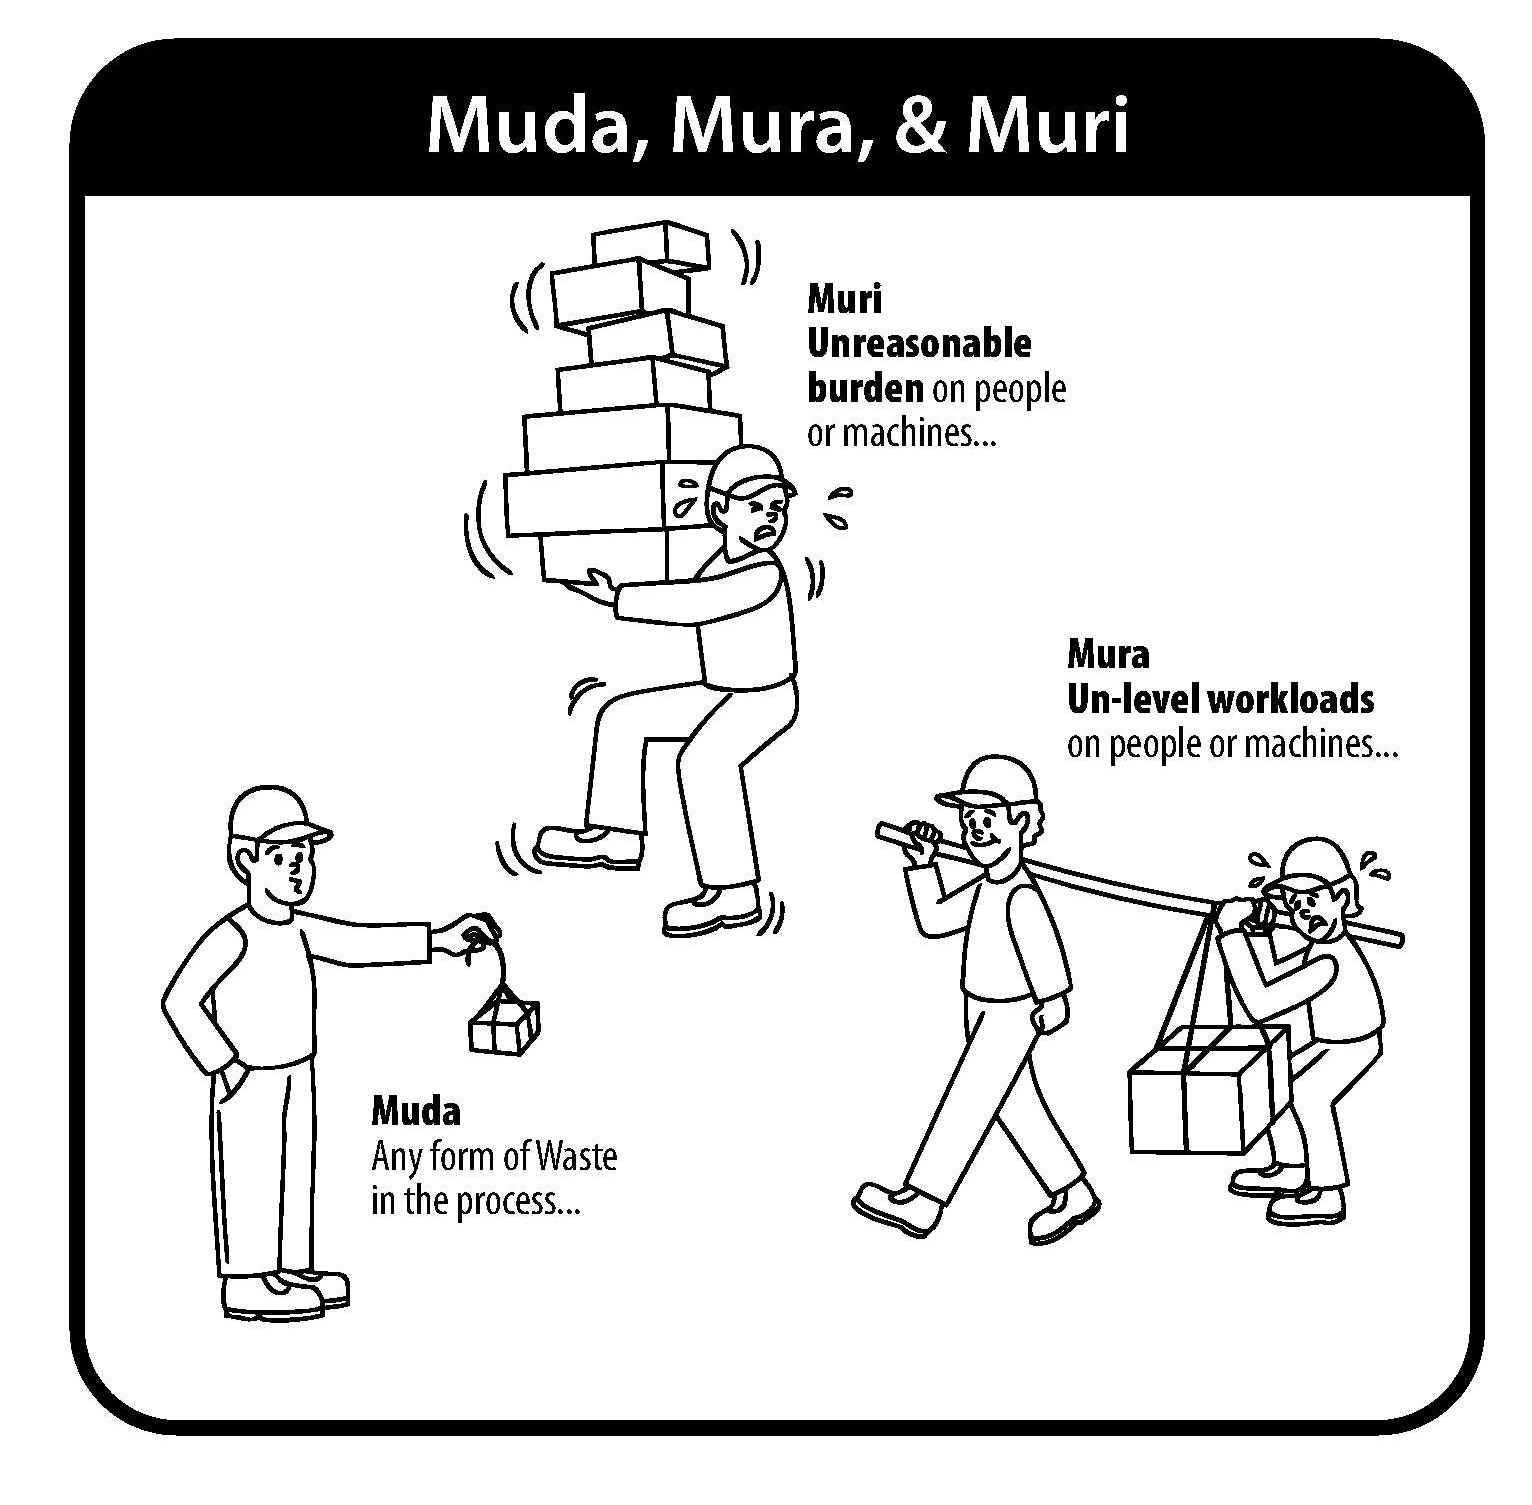 Muda, Mura, Muri: The Three Evils of Manufacturing